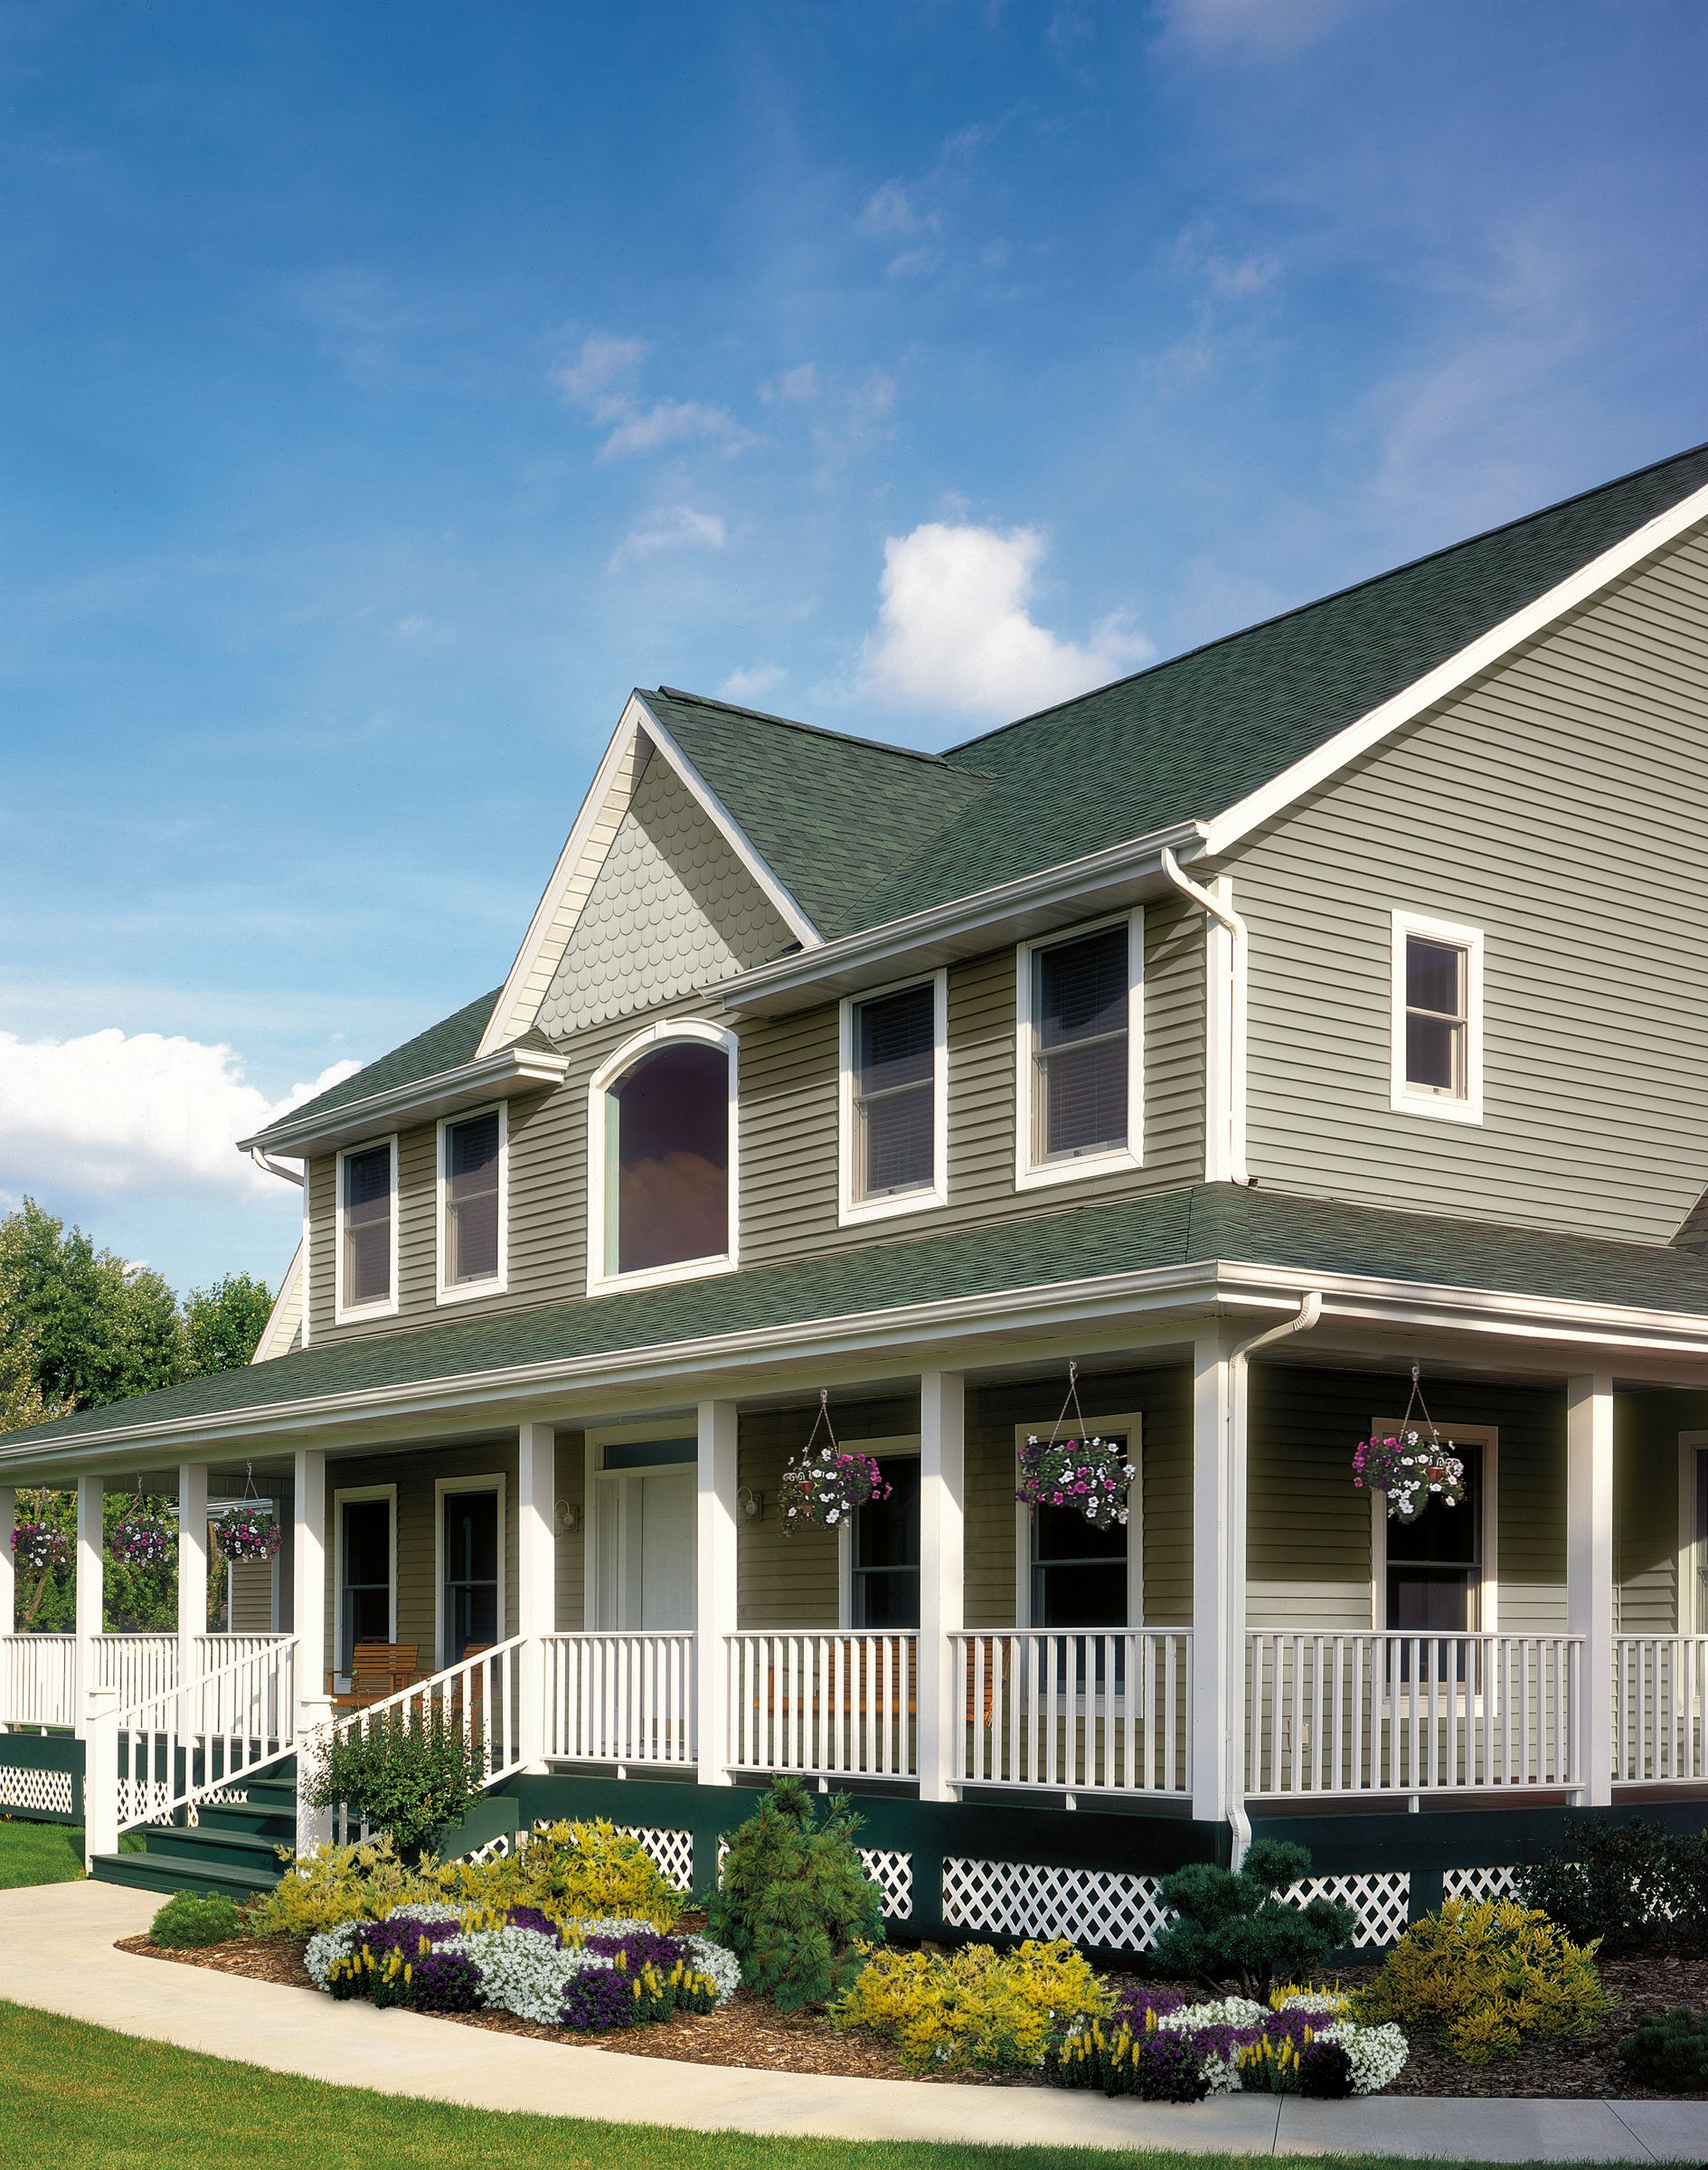 Certainteed Siding Monogram Granite Gray Sterling Gray Green Exterior Paints Exterior Paint House Exterior